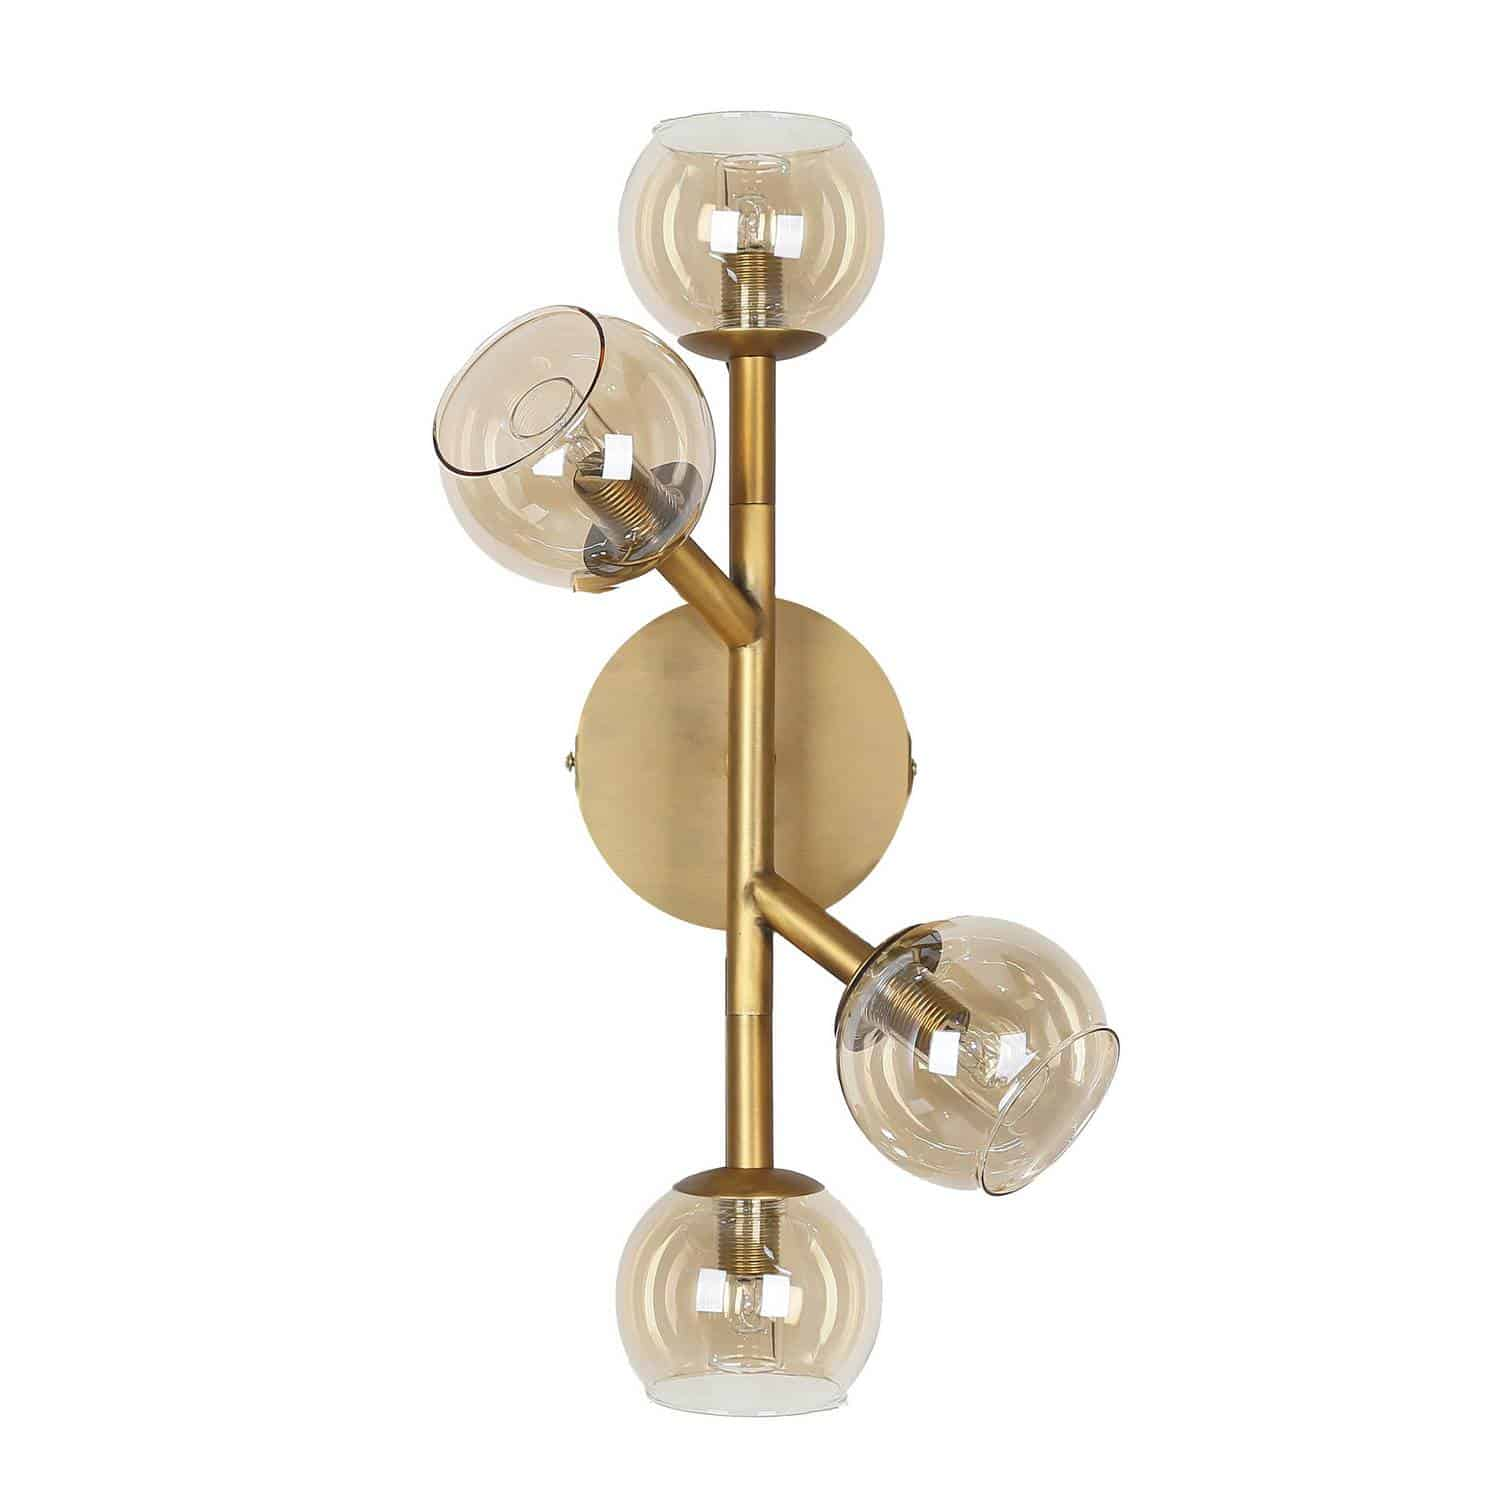 4 Light Halogen Wall Sconce Vintage Bronze Finish with Champagne Glass